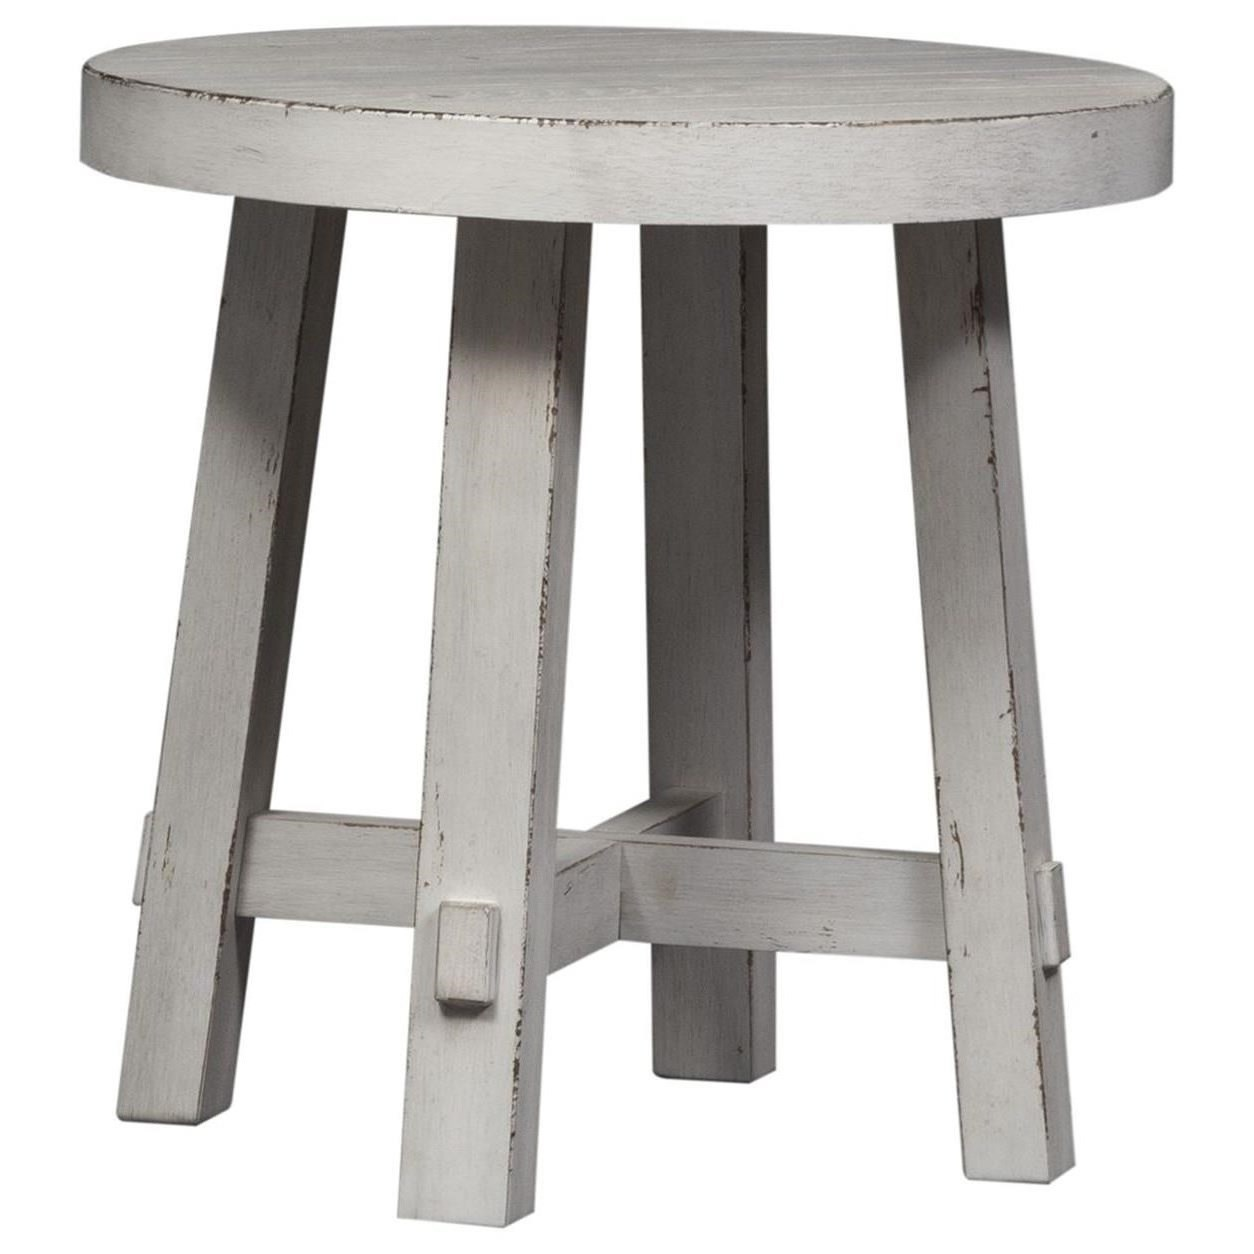 Modern Farmhouse Splay Leg Round End Table by Liberty Furniture at Darvin Furniture